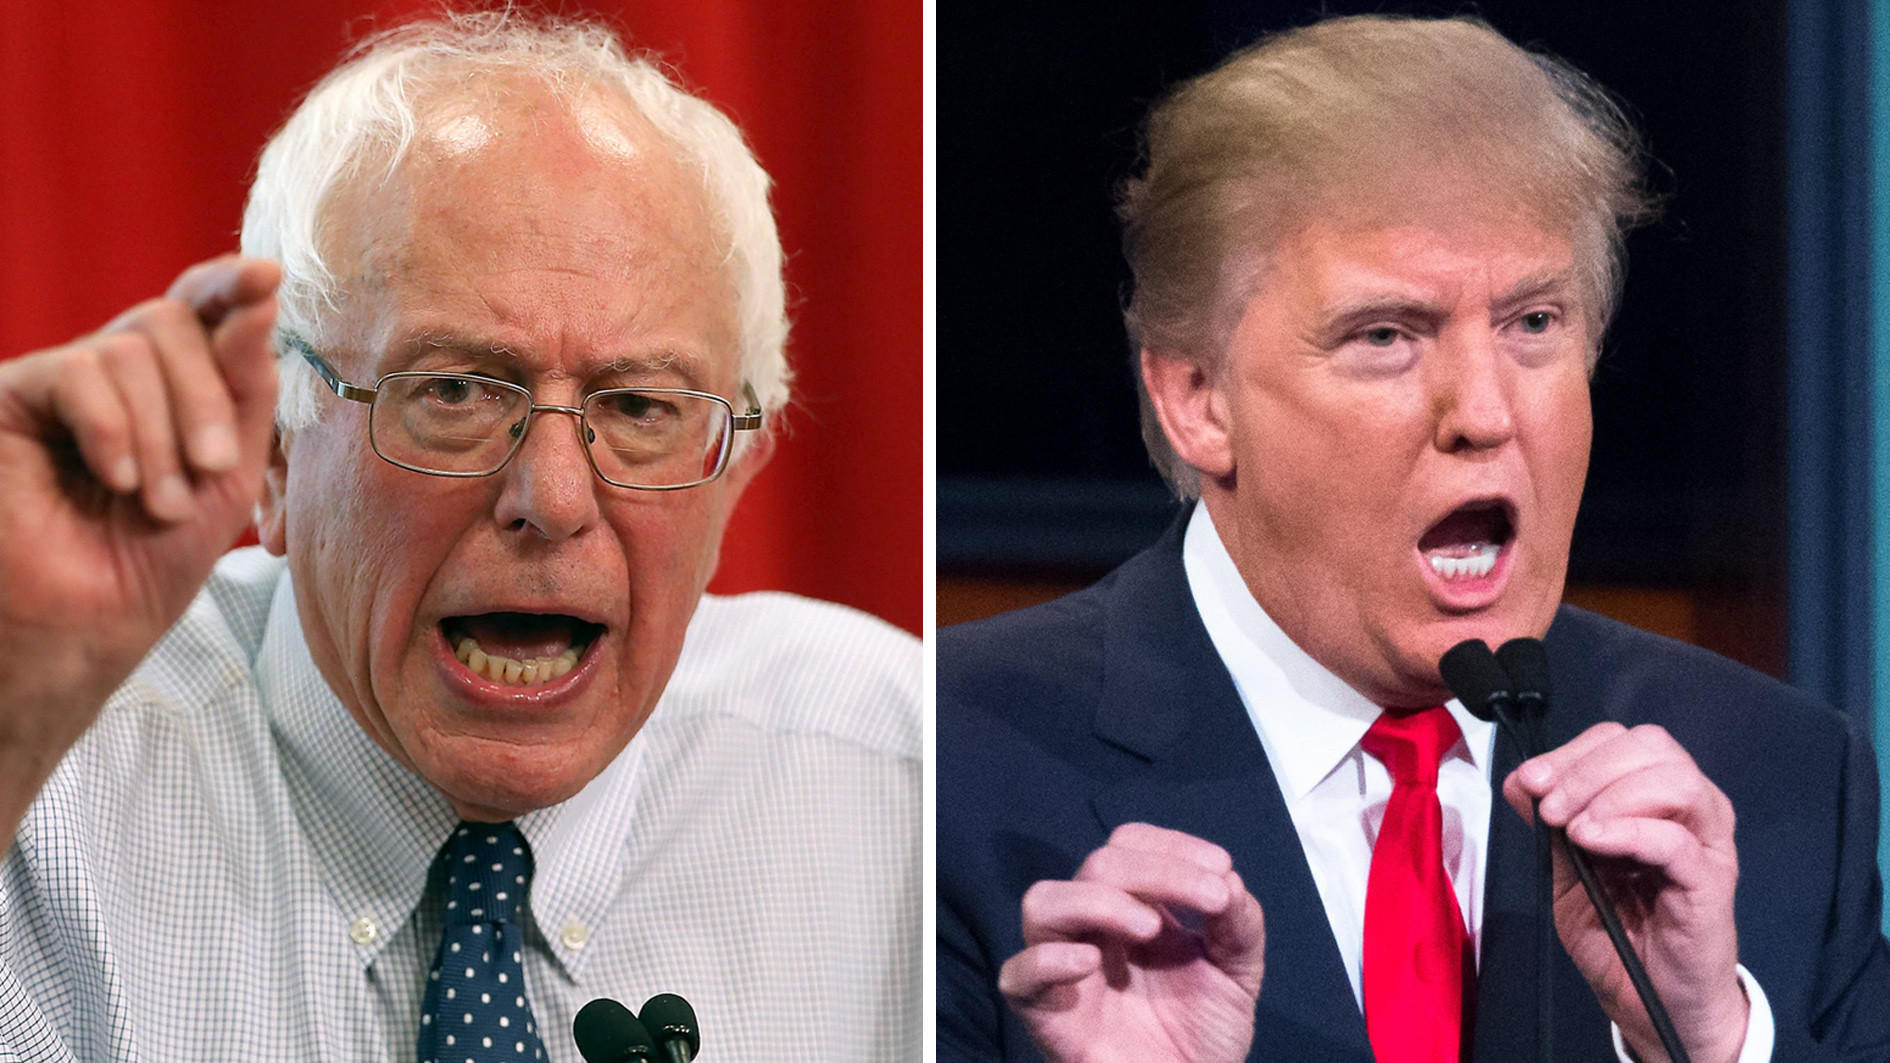 Lessons from Laclau: Are Donald Trump and Bernie Sanders Populists?